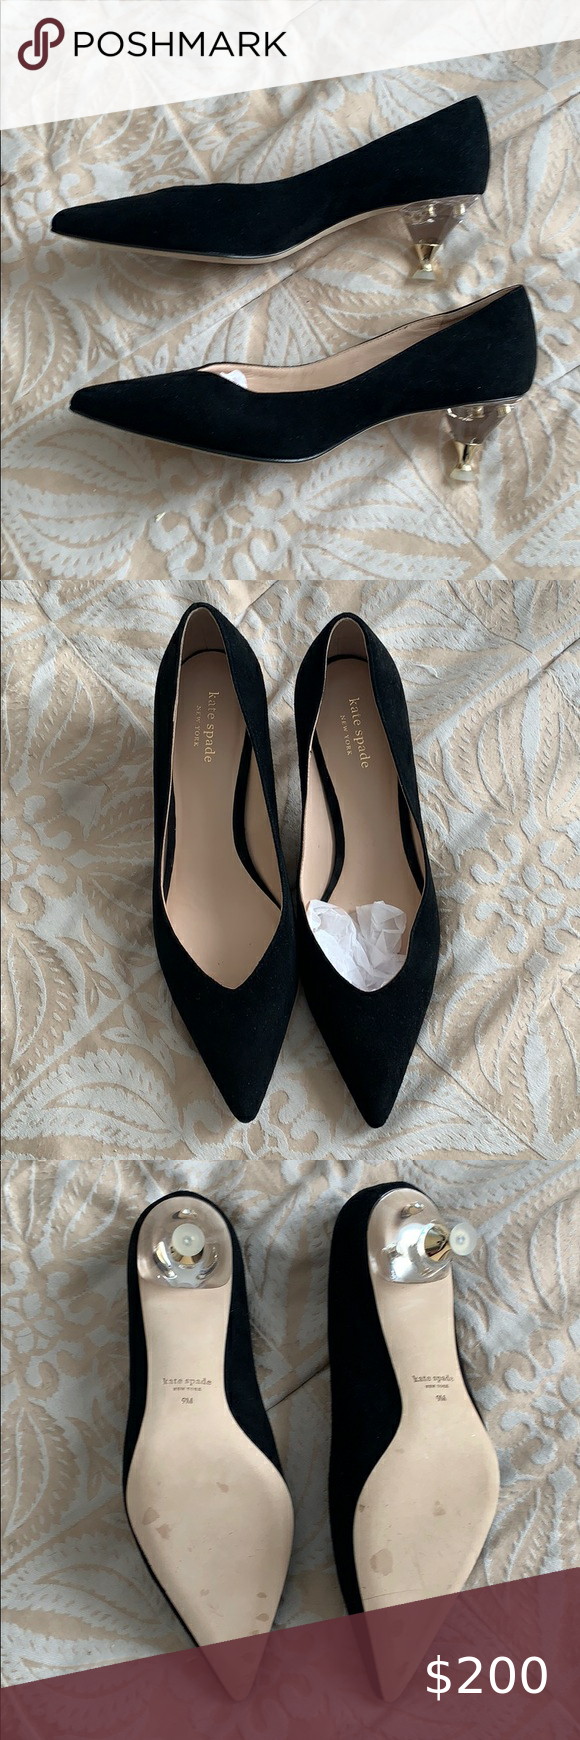 Sale Kate Spade Kitten Pumps Perfect Fall Heel In 2020 Work Heels Shoes Women Heels Kate Spade